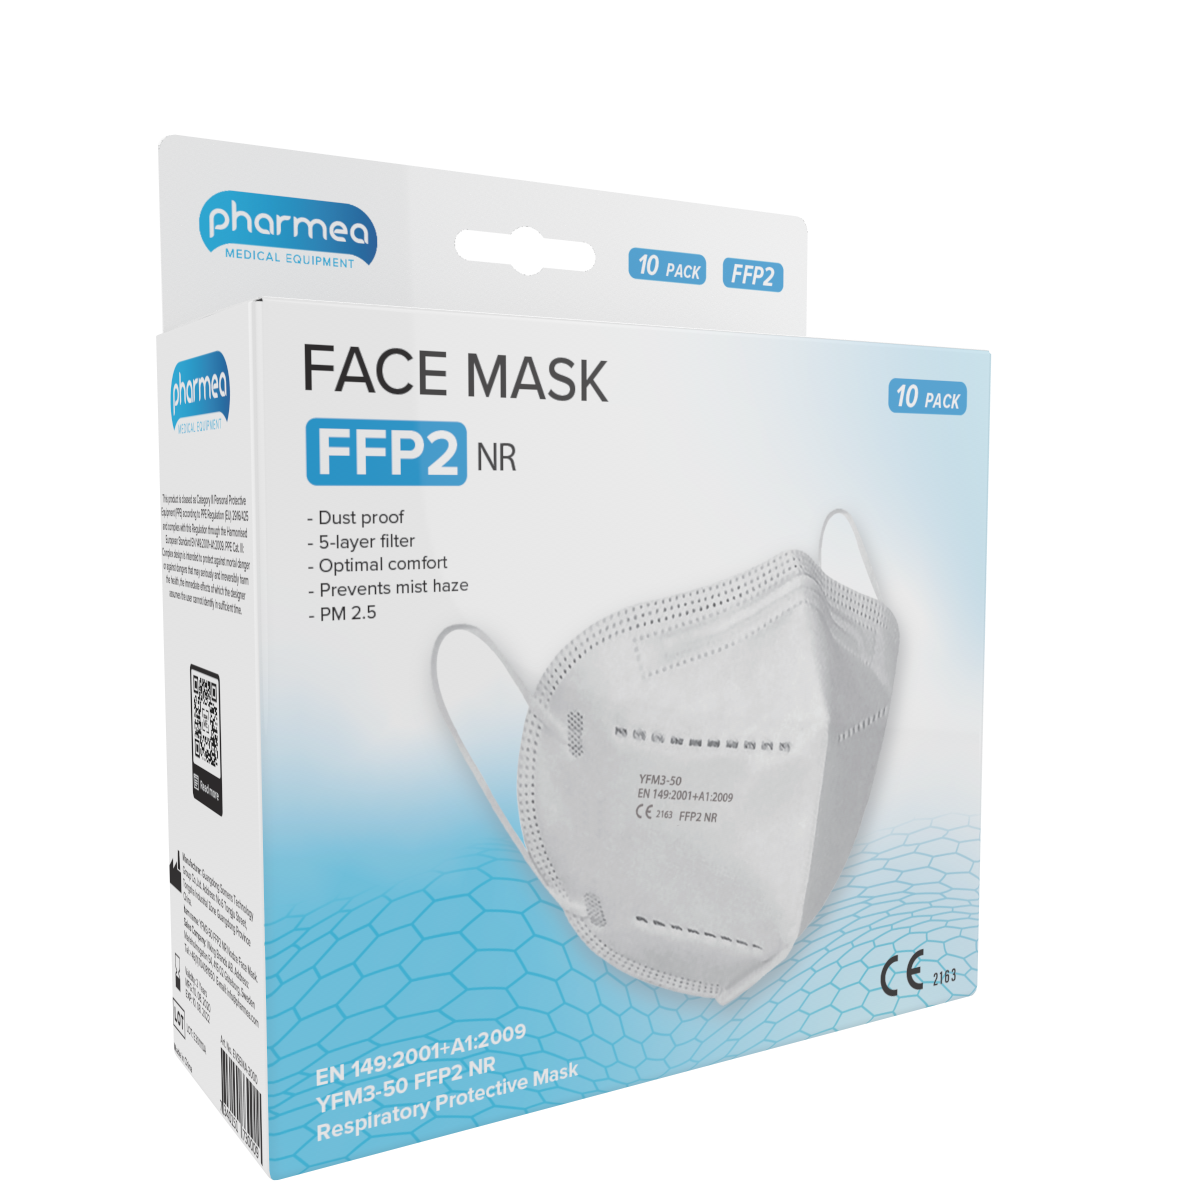 Pharmea Facemask FFP2 Mouth masks 10 pieces